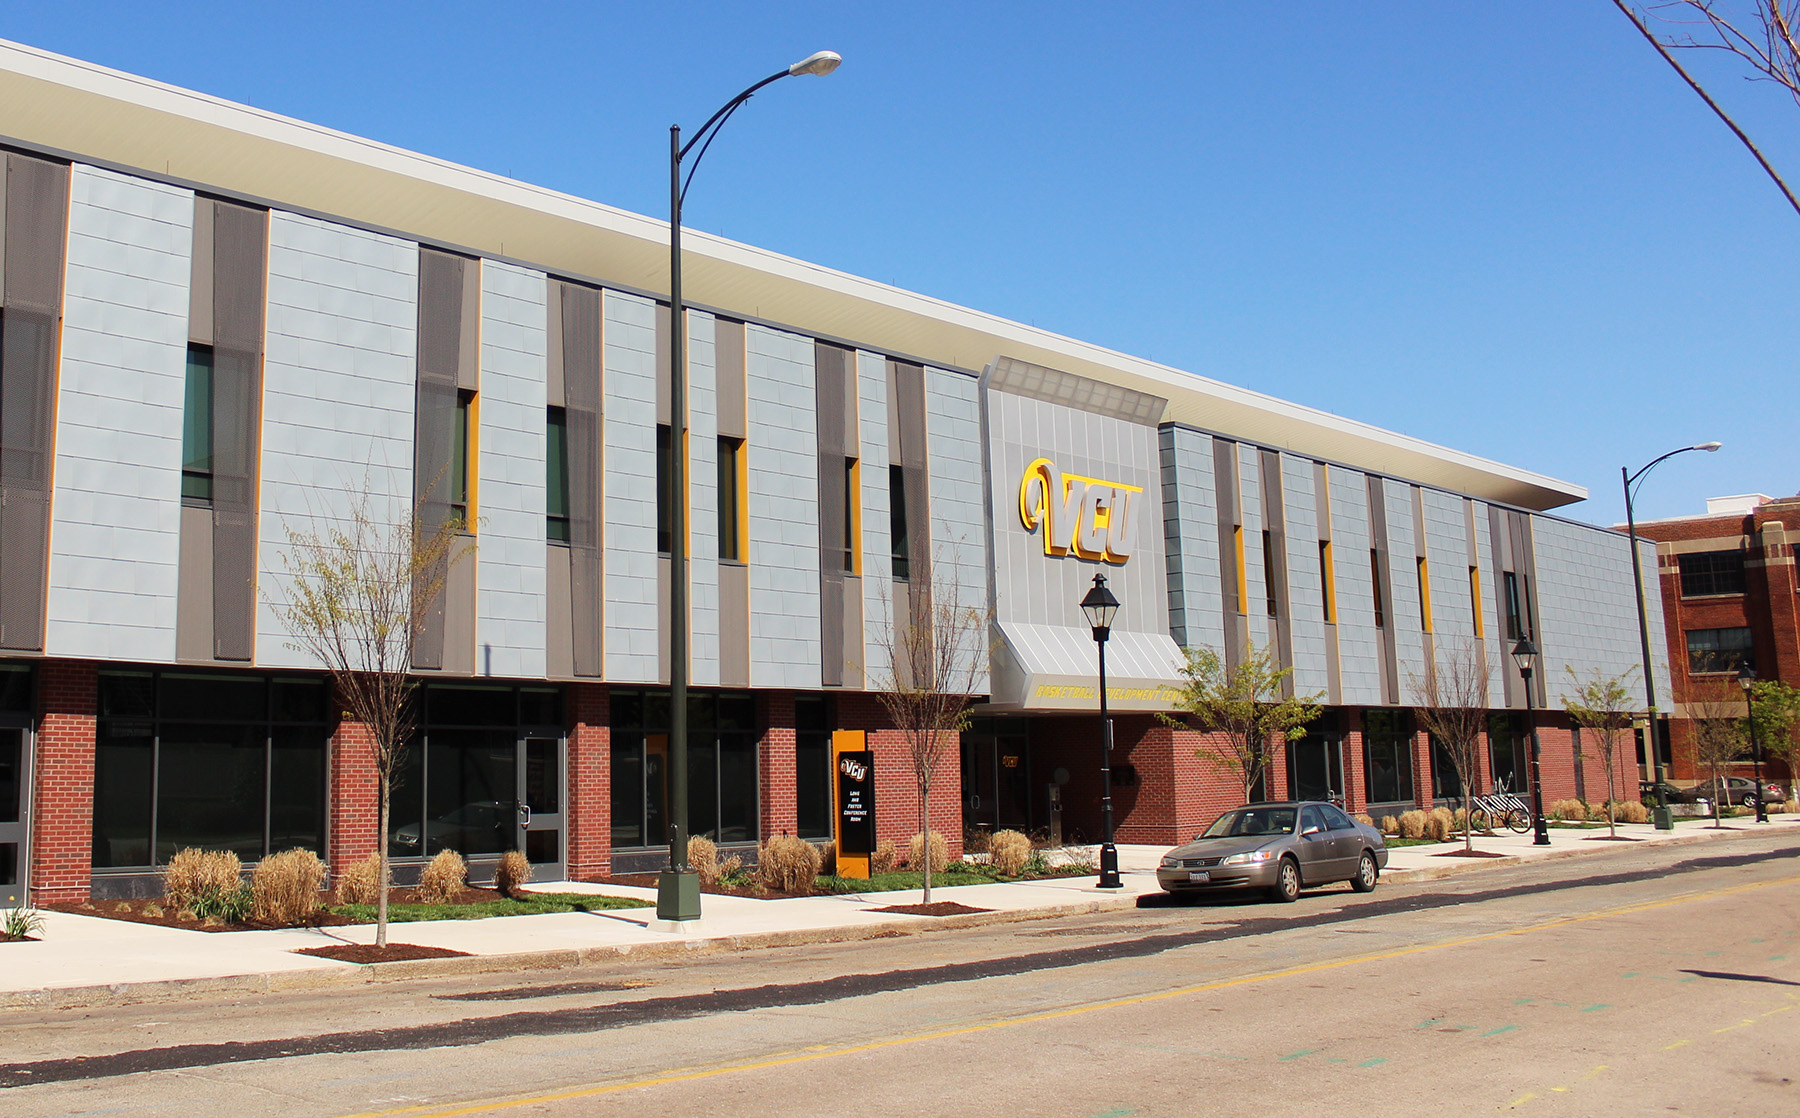 VCU Basketball Training Facility project from Commonwealth Blinds